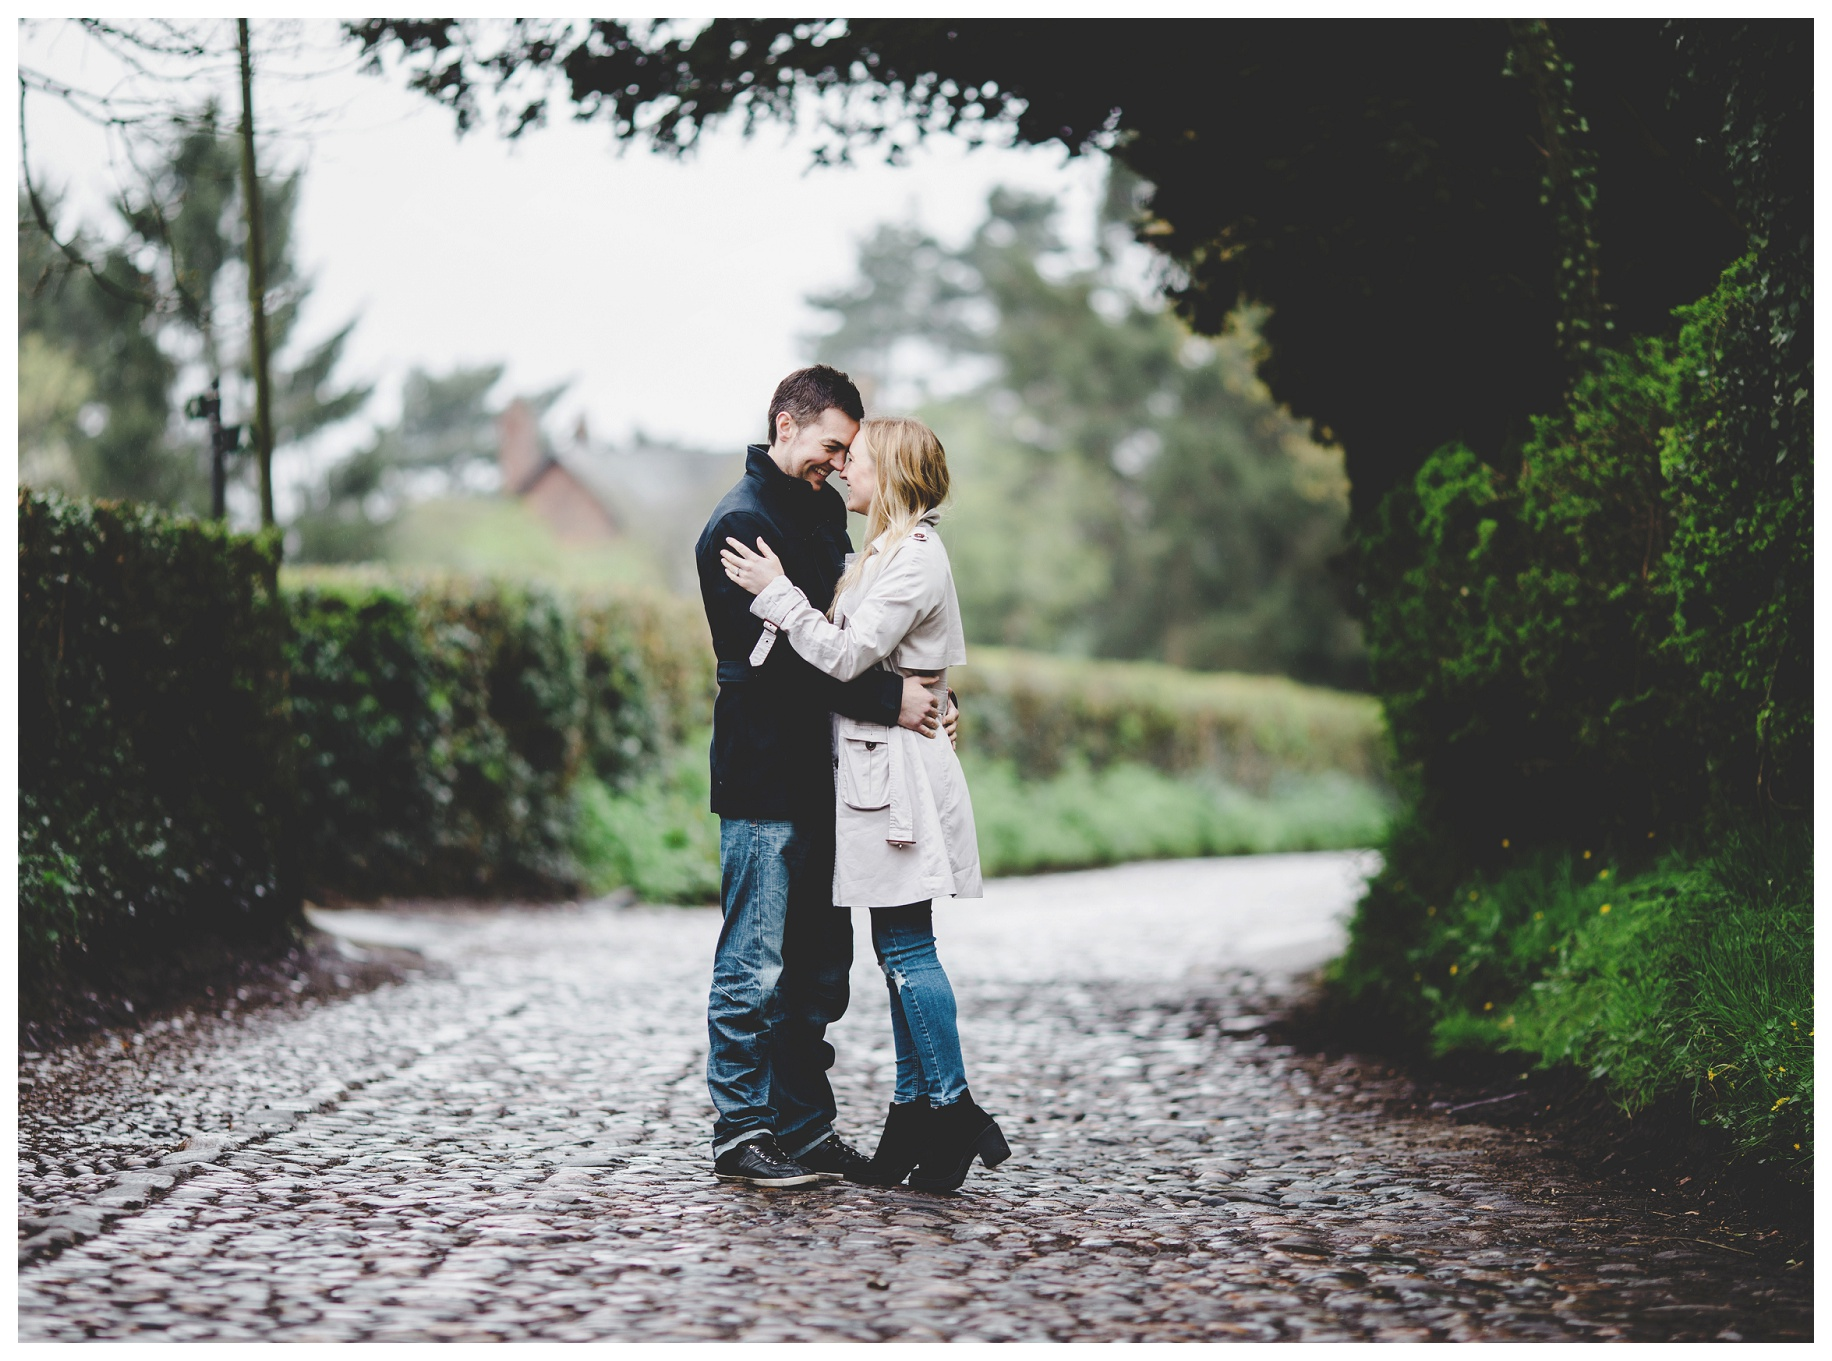 Cheshire wedding photographer - pre wedding photoshoot - The Oaktree of Peover (6)